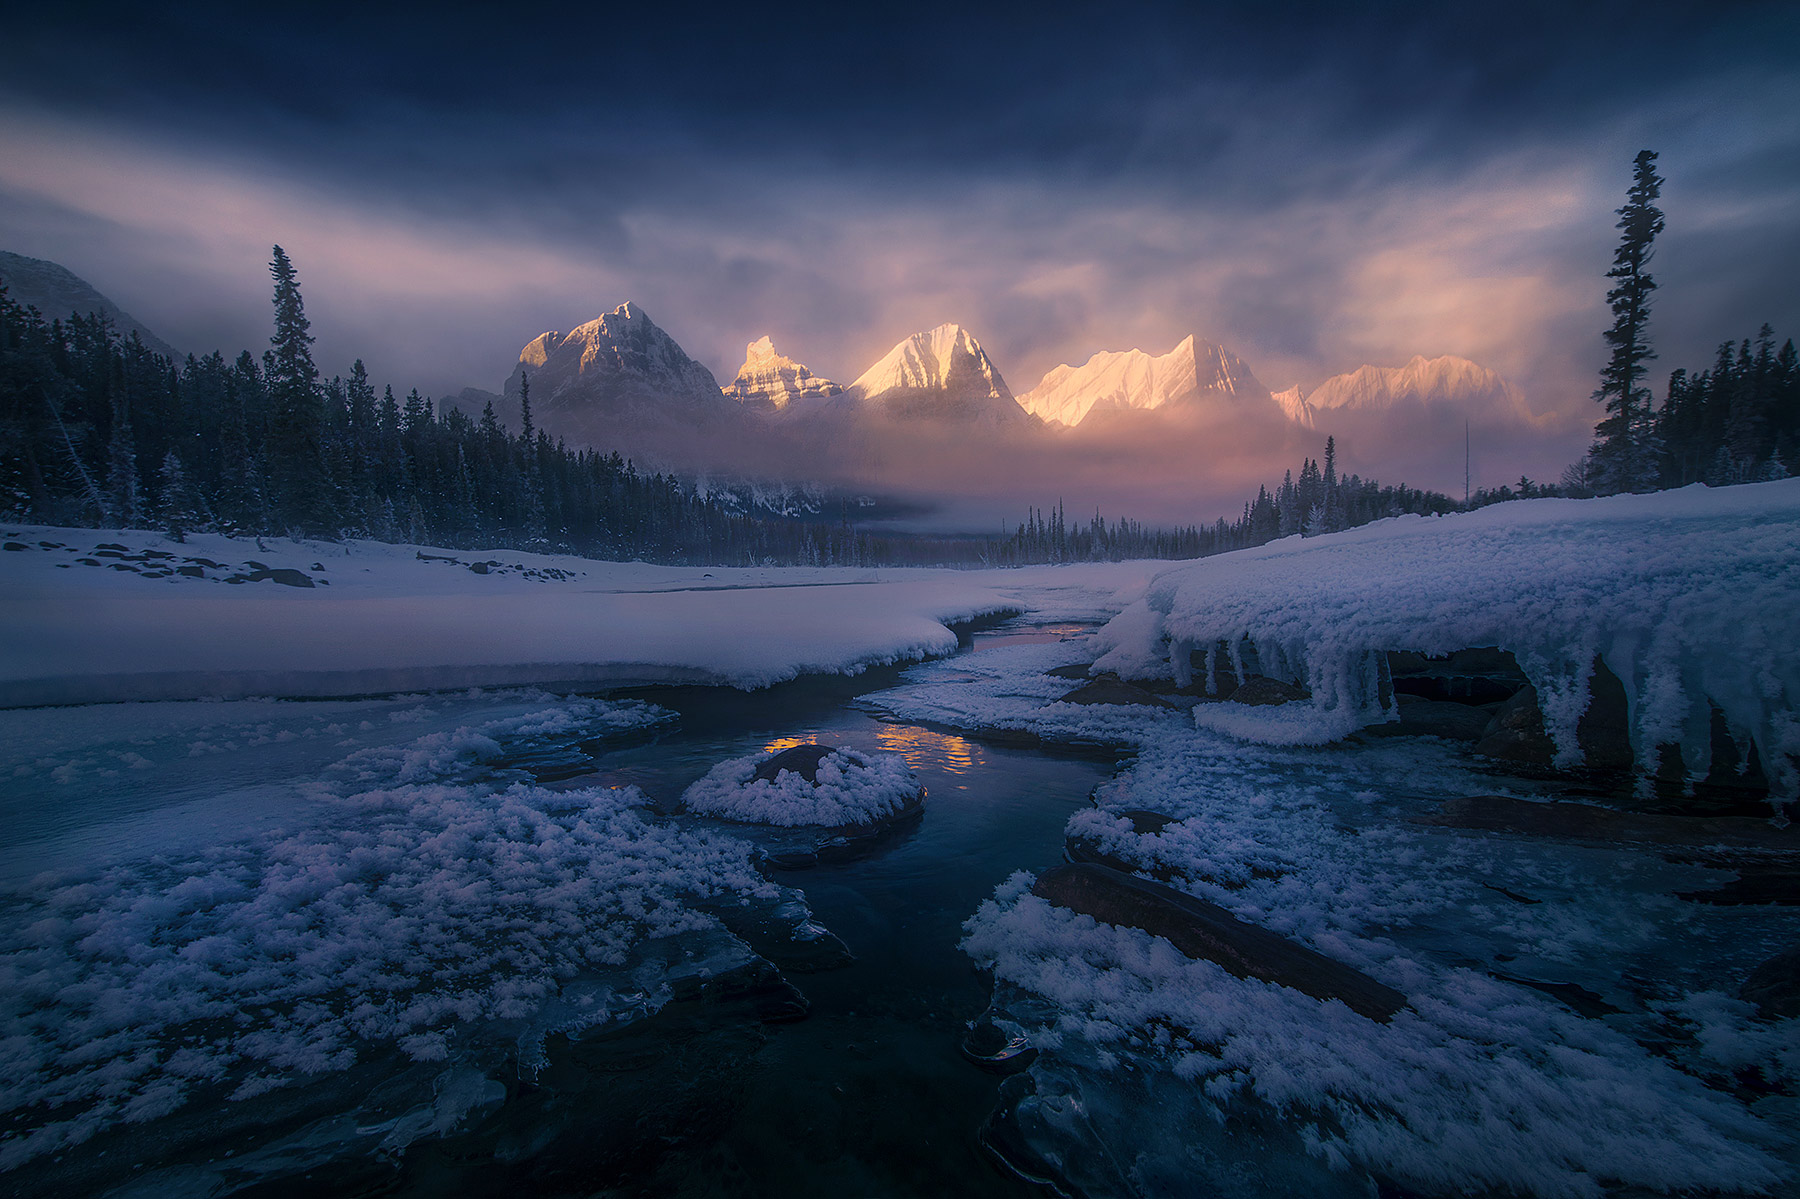 cold, jasper, athabasca, frost, ice, reflection, mountains, misty, photo